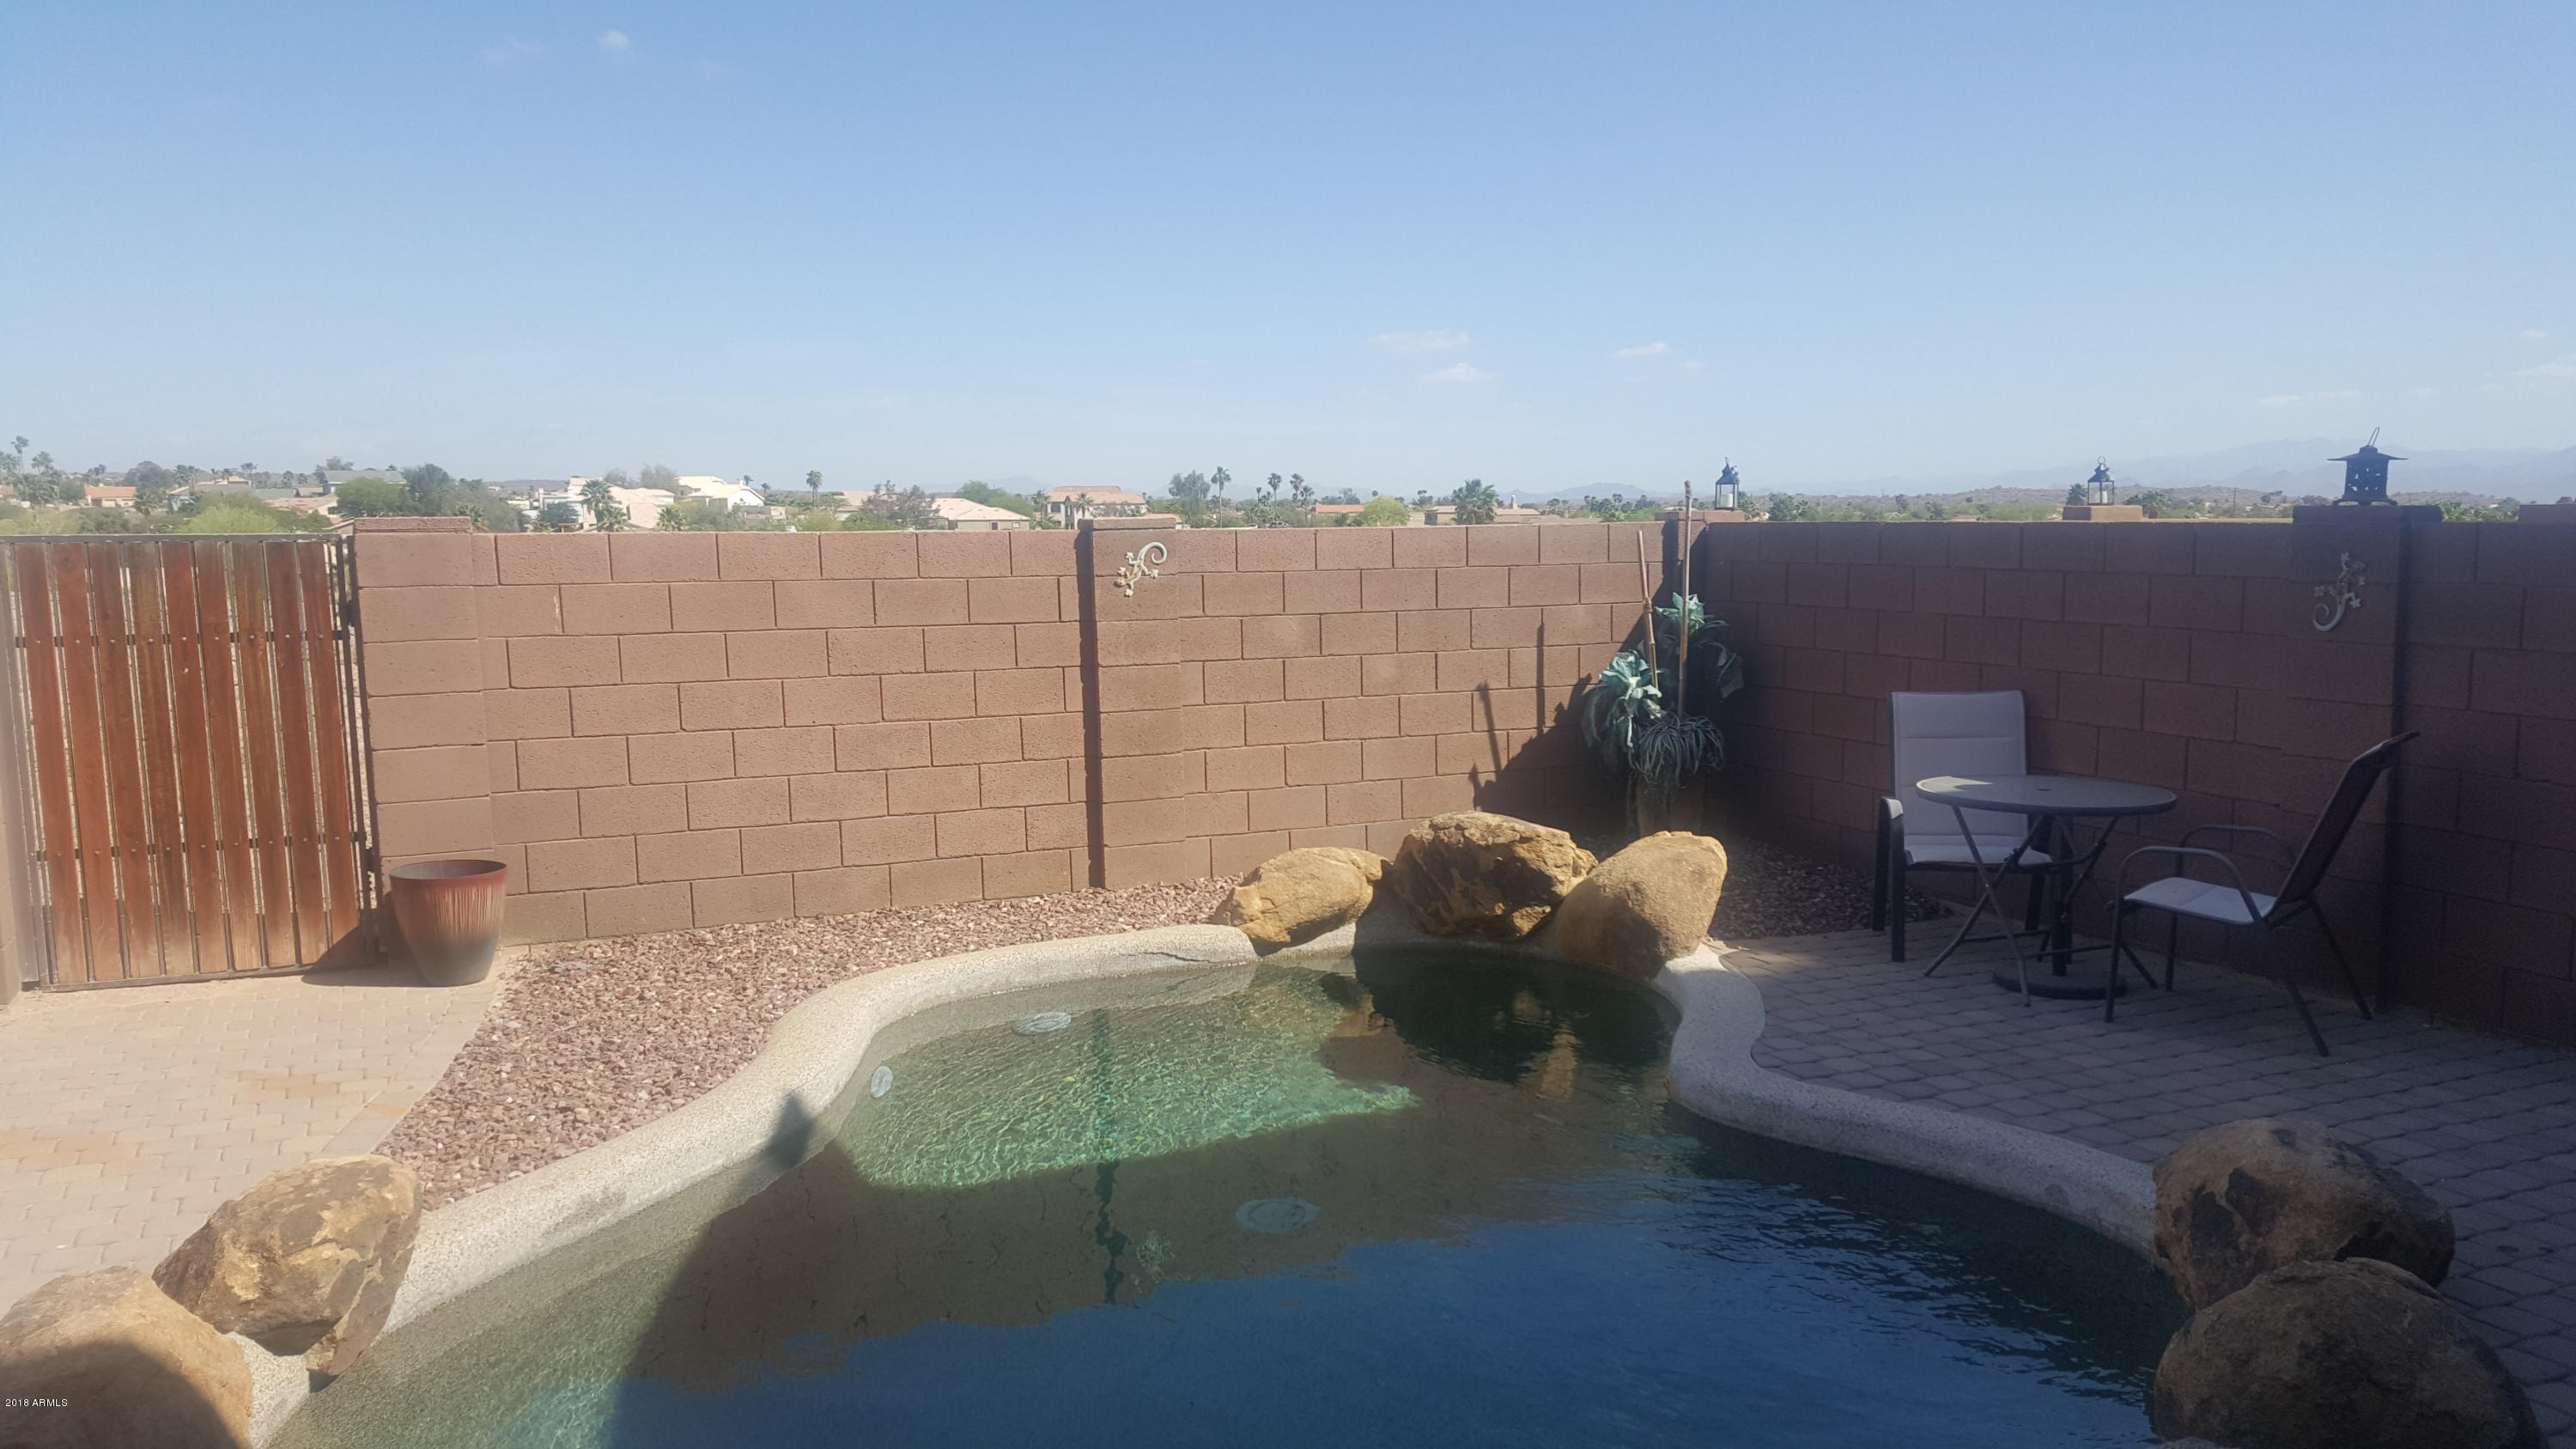 MLS 5759371 16674 E WESTBY Drive Unit 101, Fountain Hills, AZ 85268 Fountain Hills AZ REO Bank Owned Foreclosure